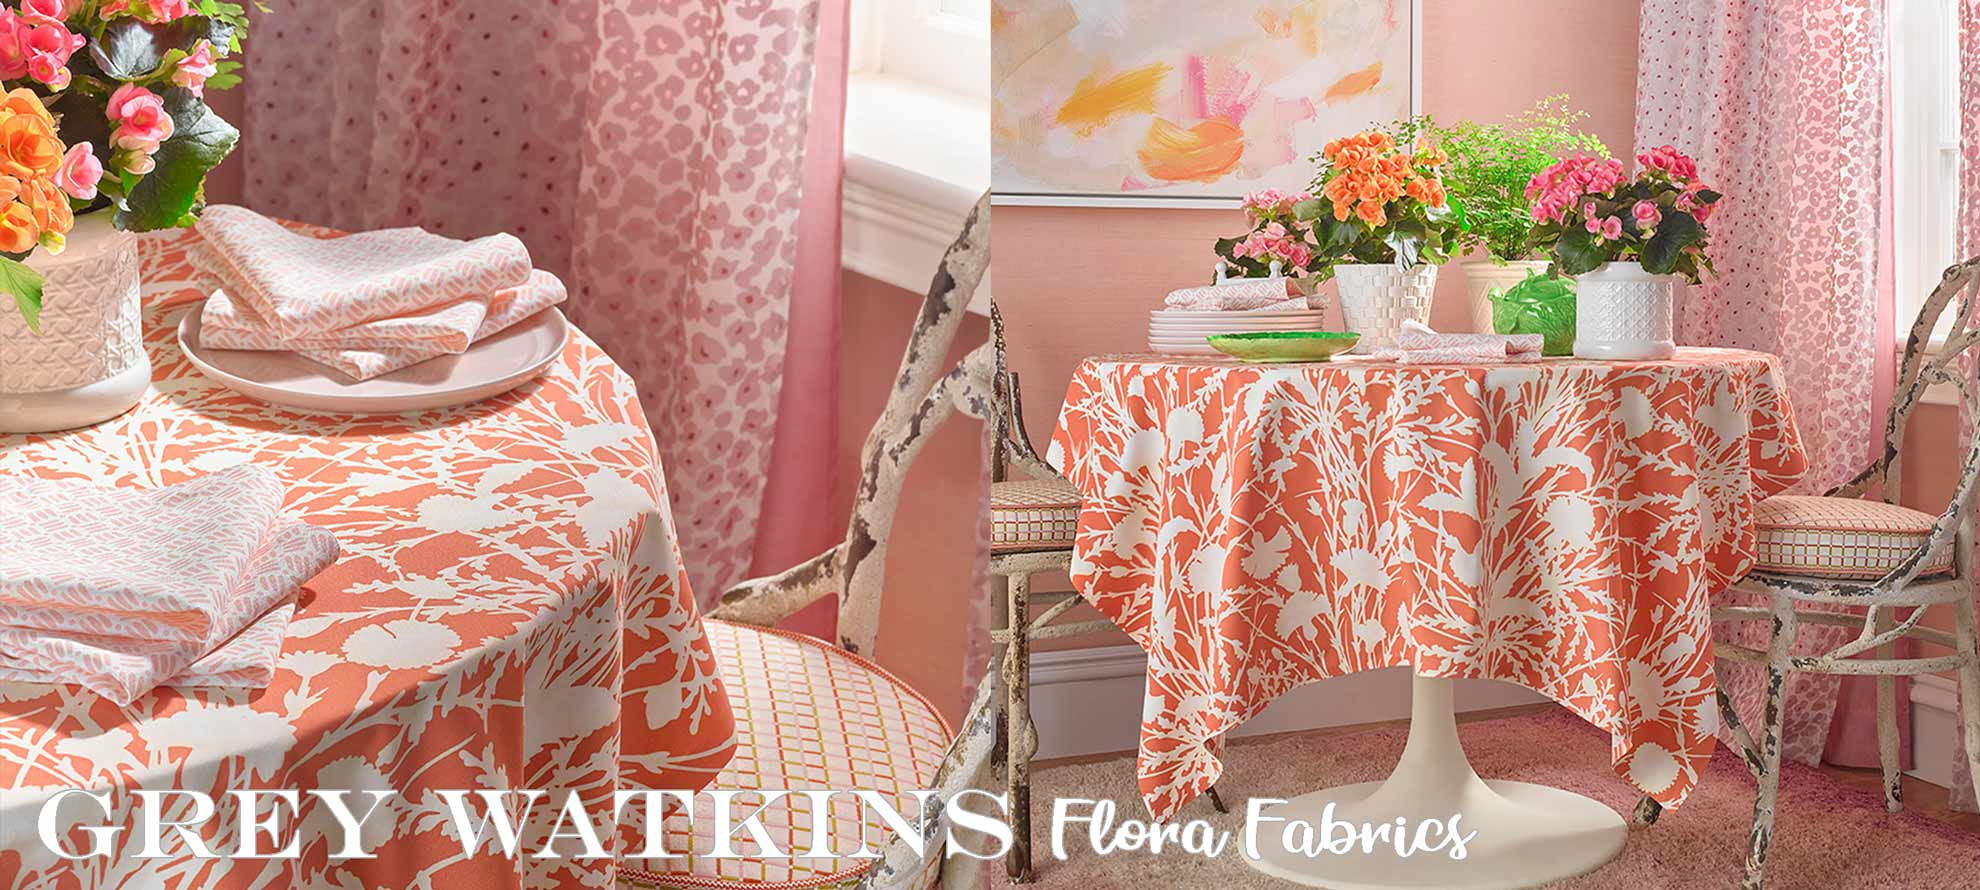 Grey Watkins Fabrics Flora Collection